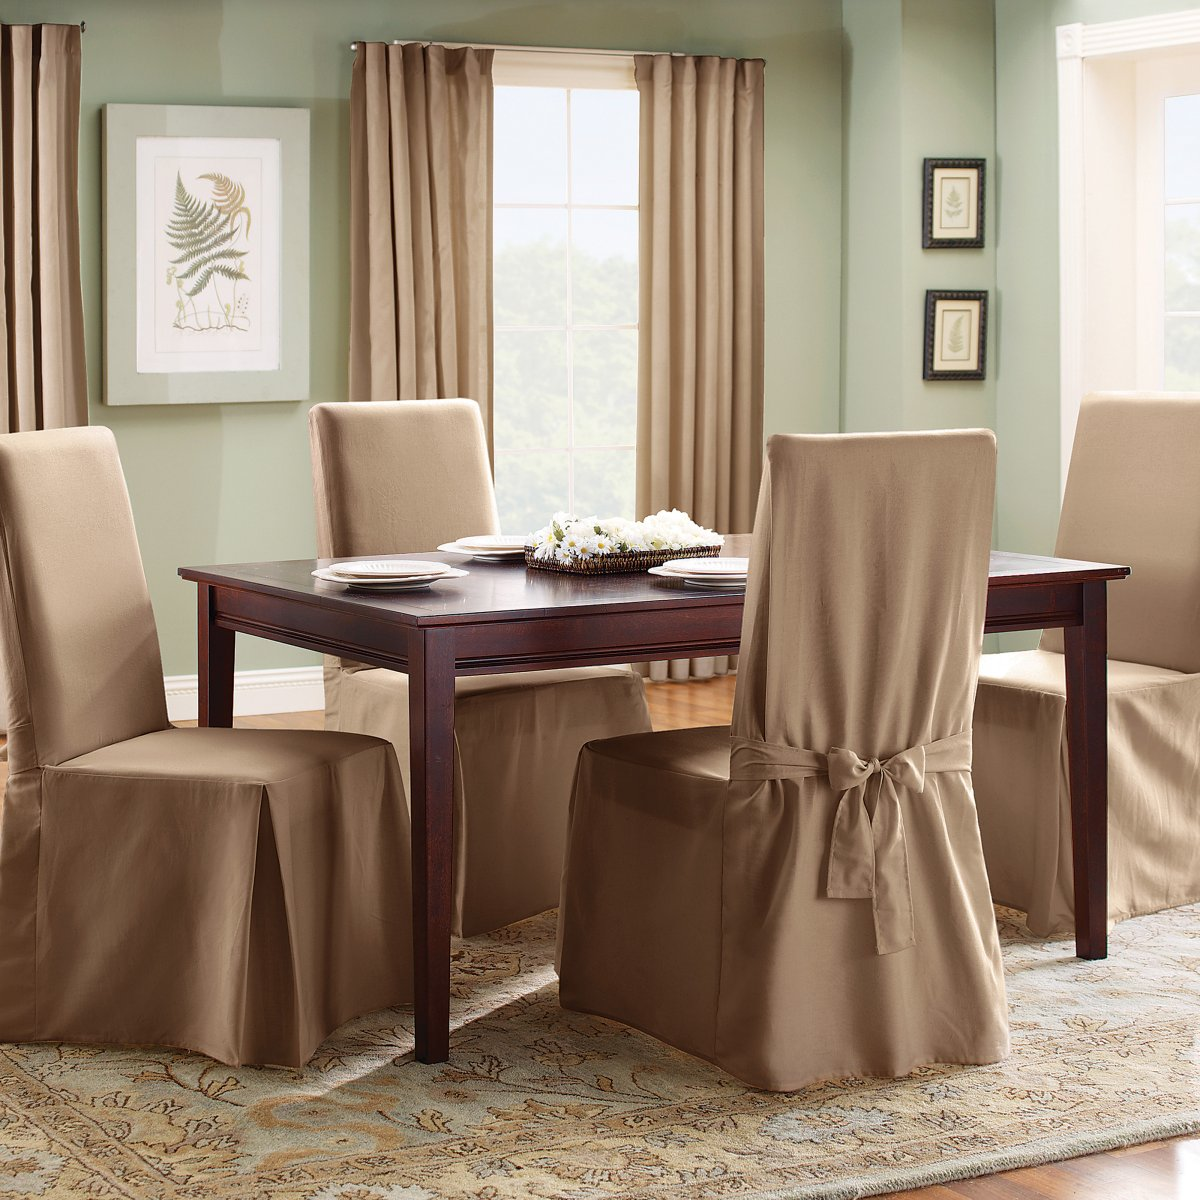 Dining Chair Slipcovers Dining Room (Image 2 of 10)